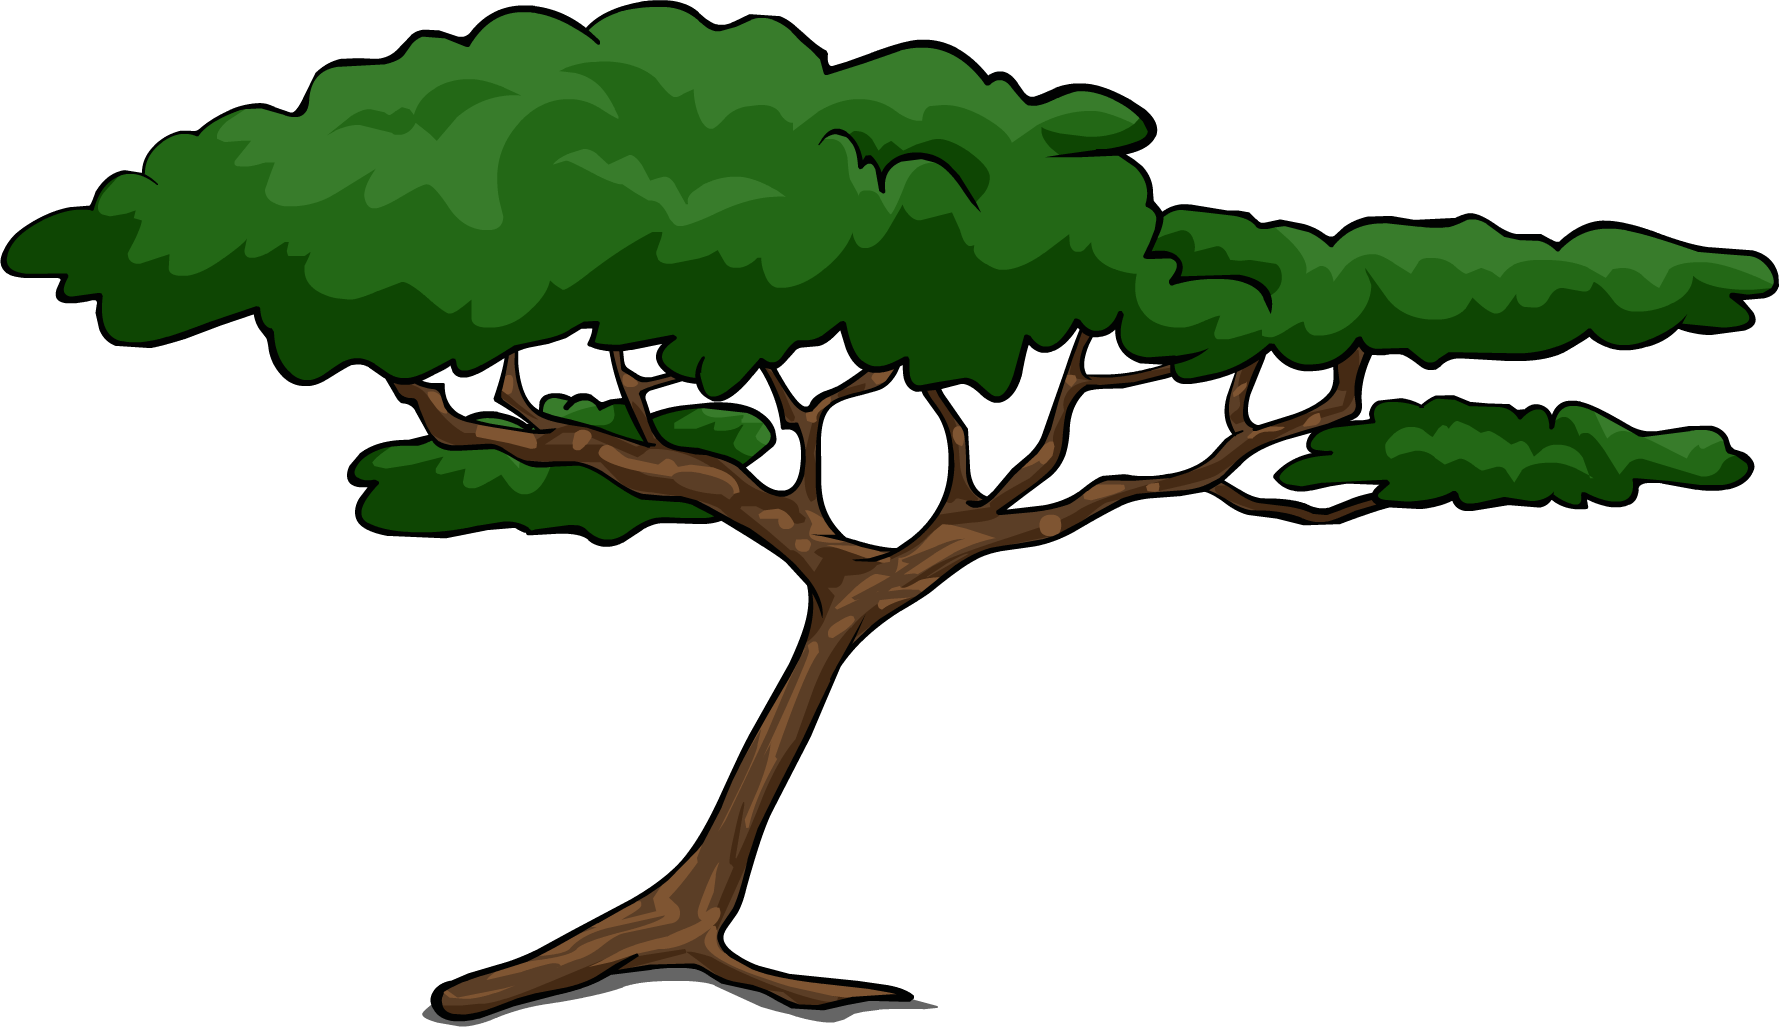 Clipart trees rainforest. Say no to drugs